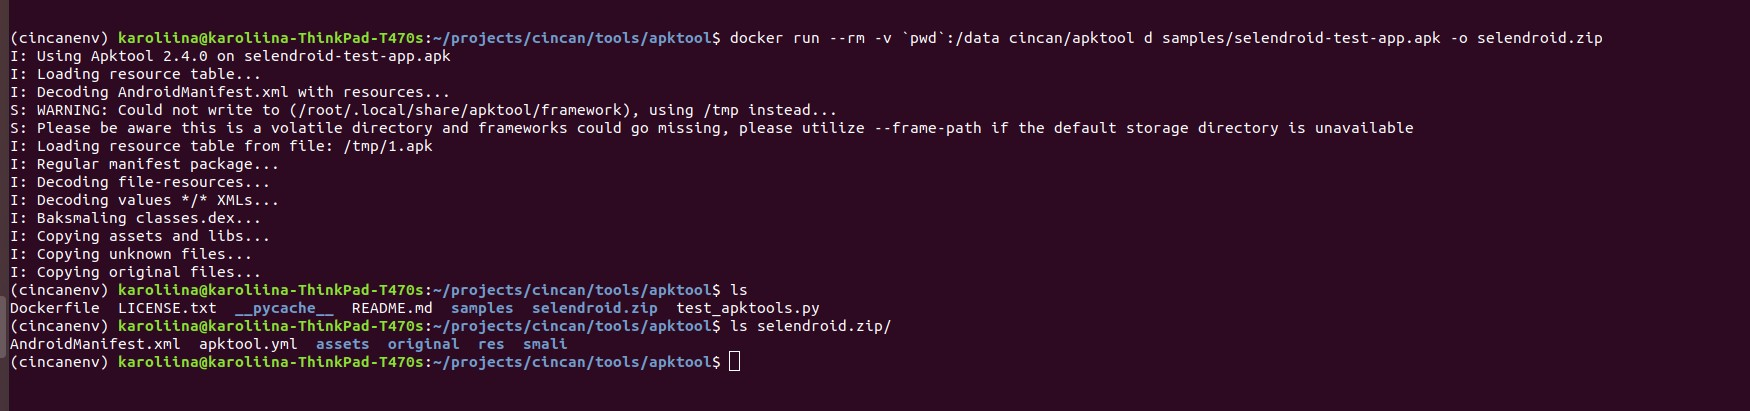 apktool-exampledocker